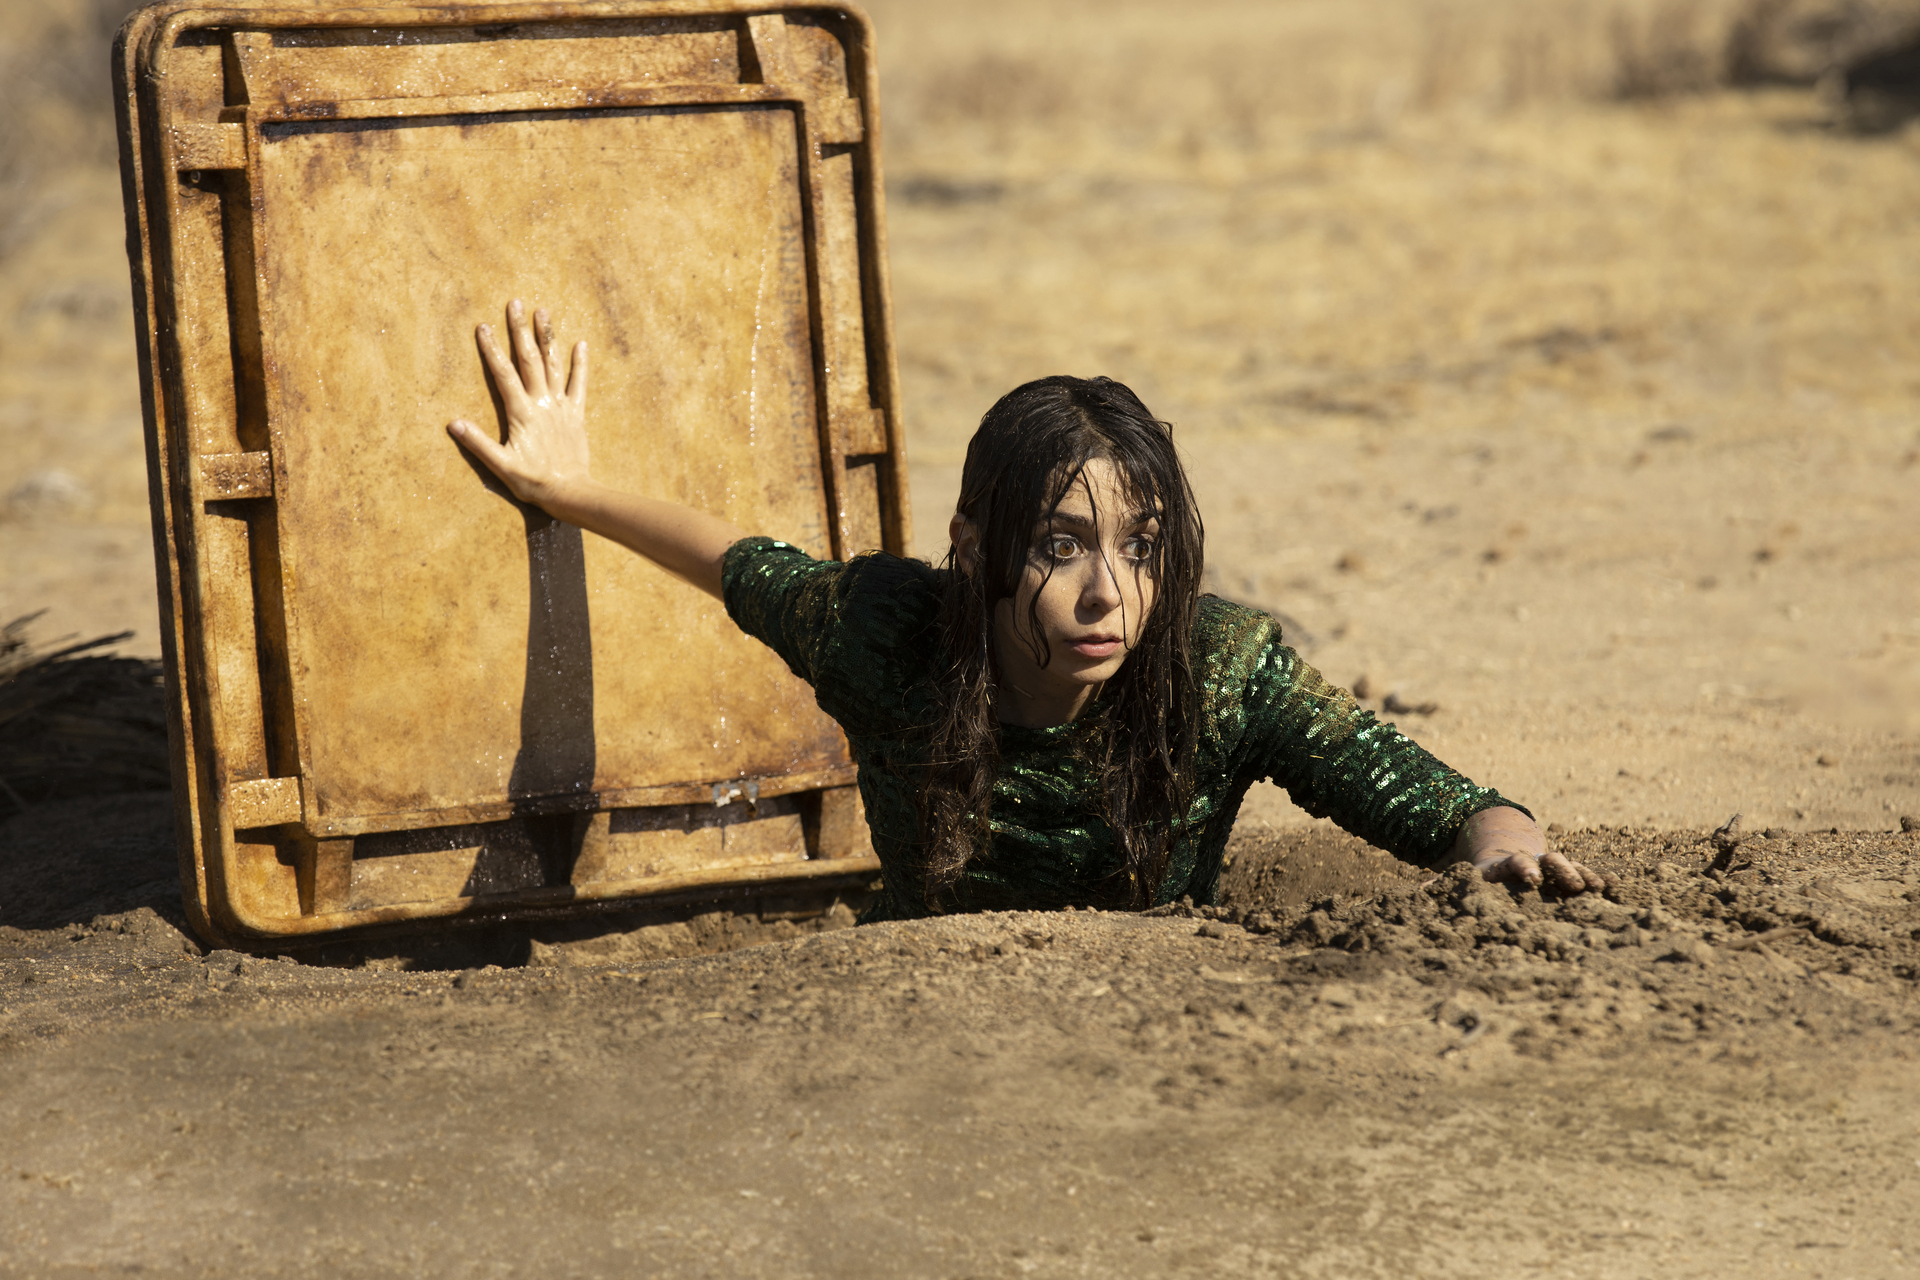 Cristin Milioti as Hazel in Made for Love, climbing out of the metal hatch to an underground waterway in the desert.